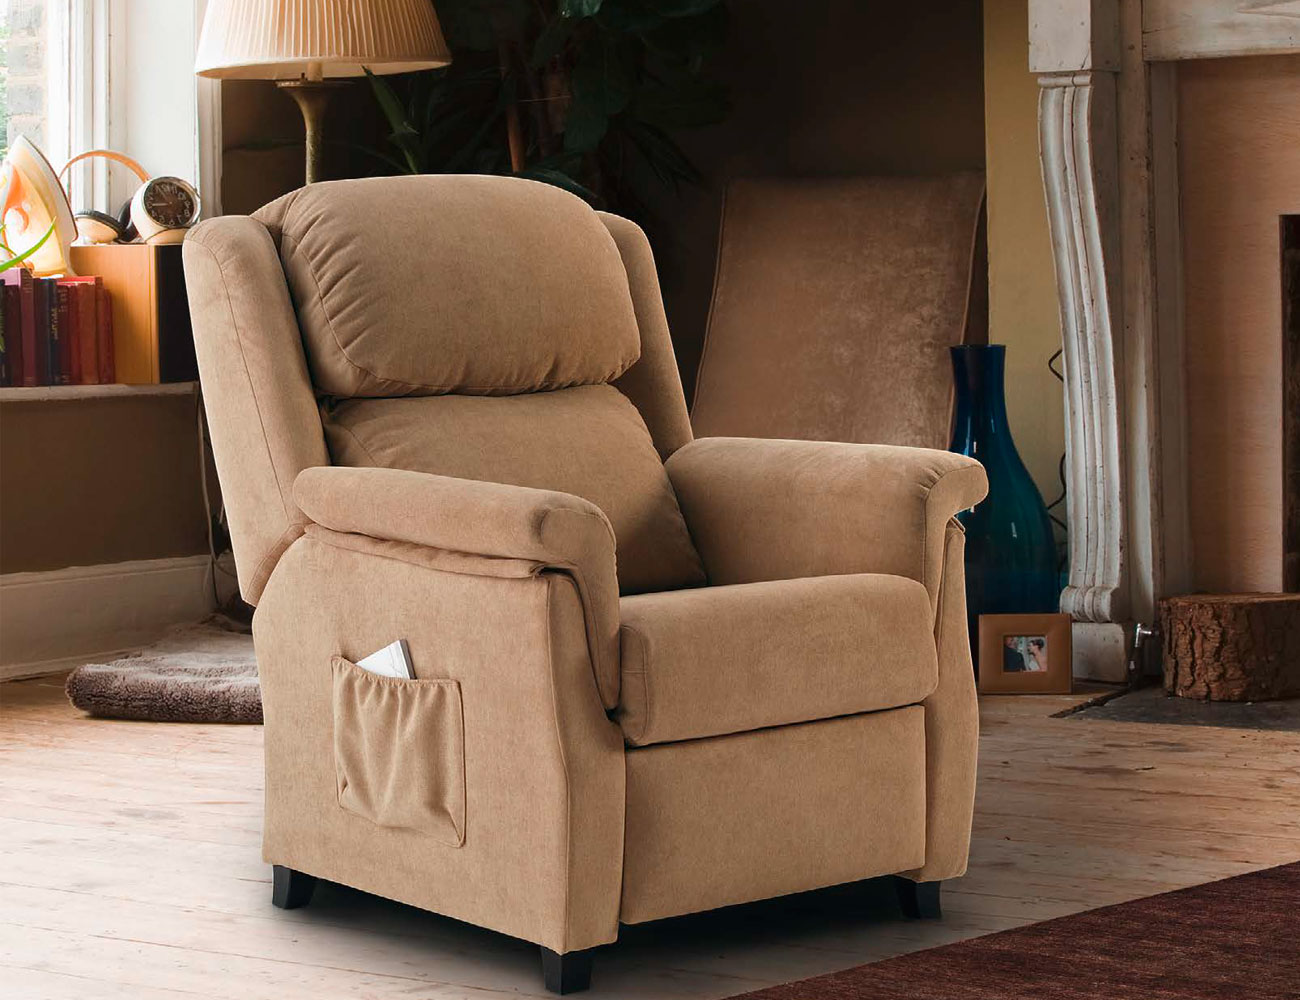 Sillon relax manual bianca 119